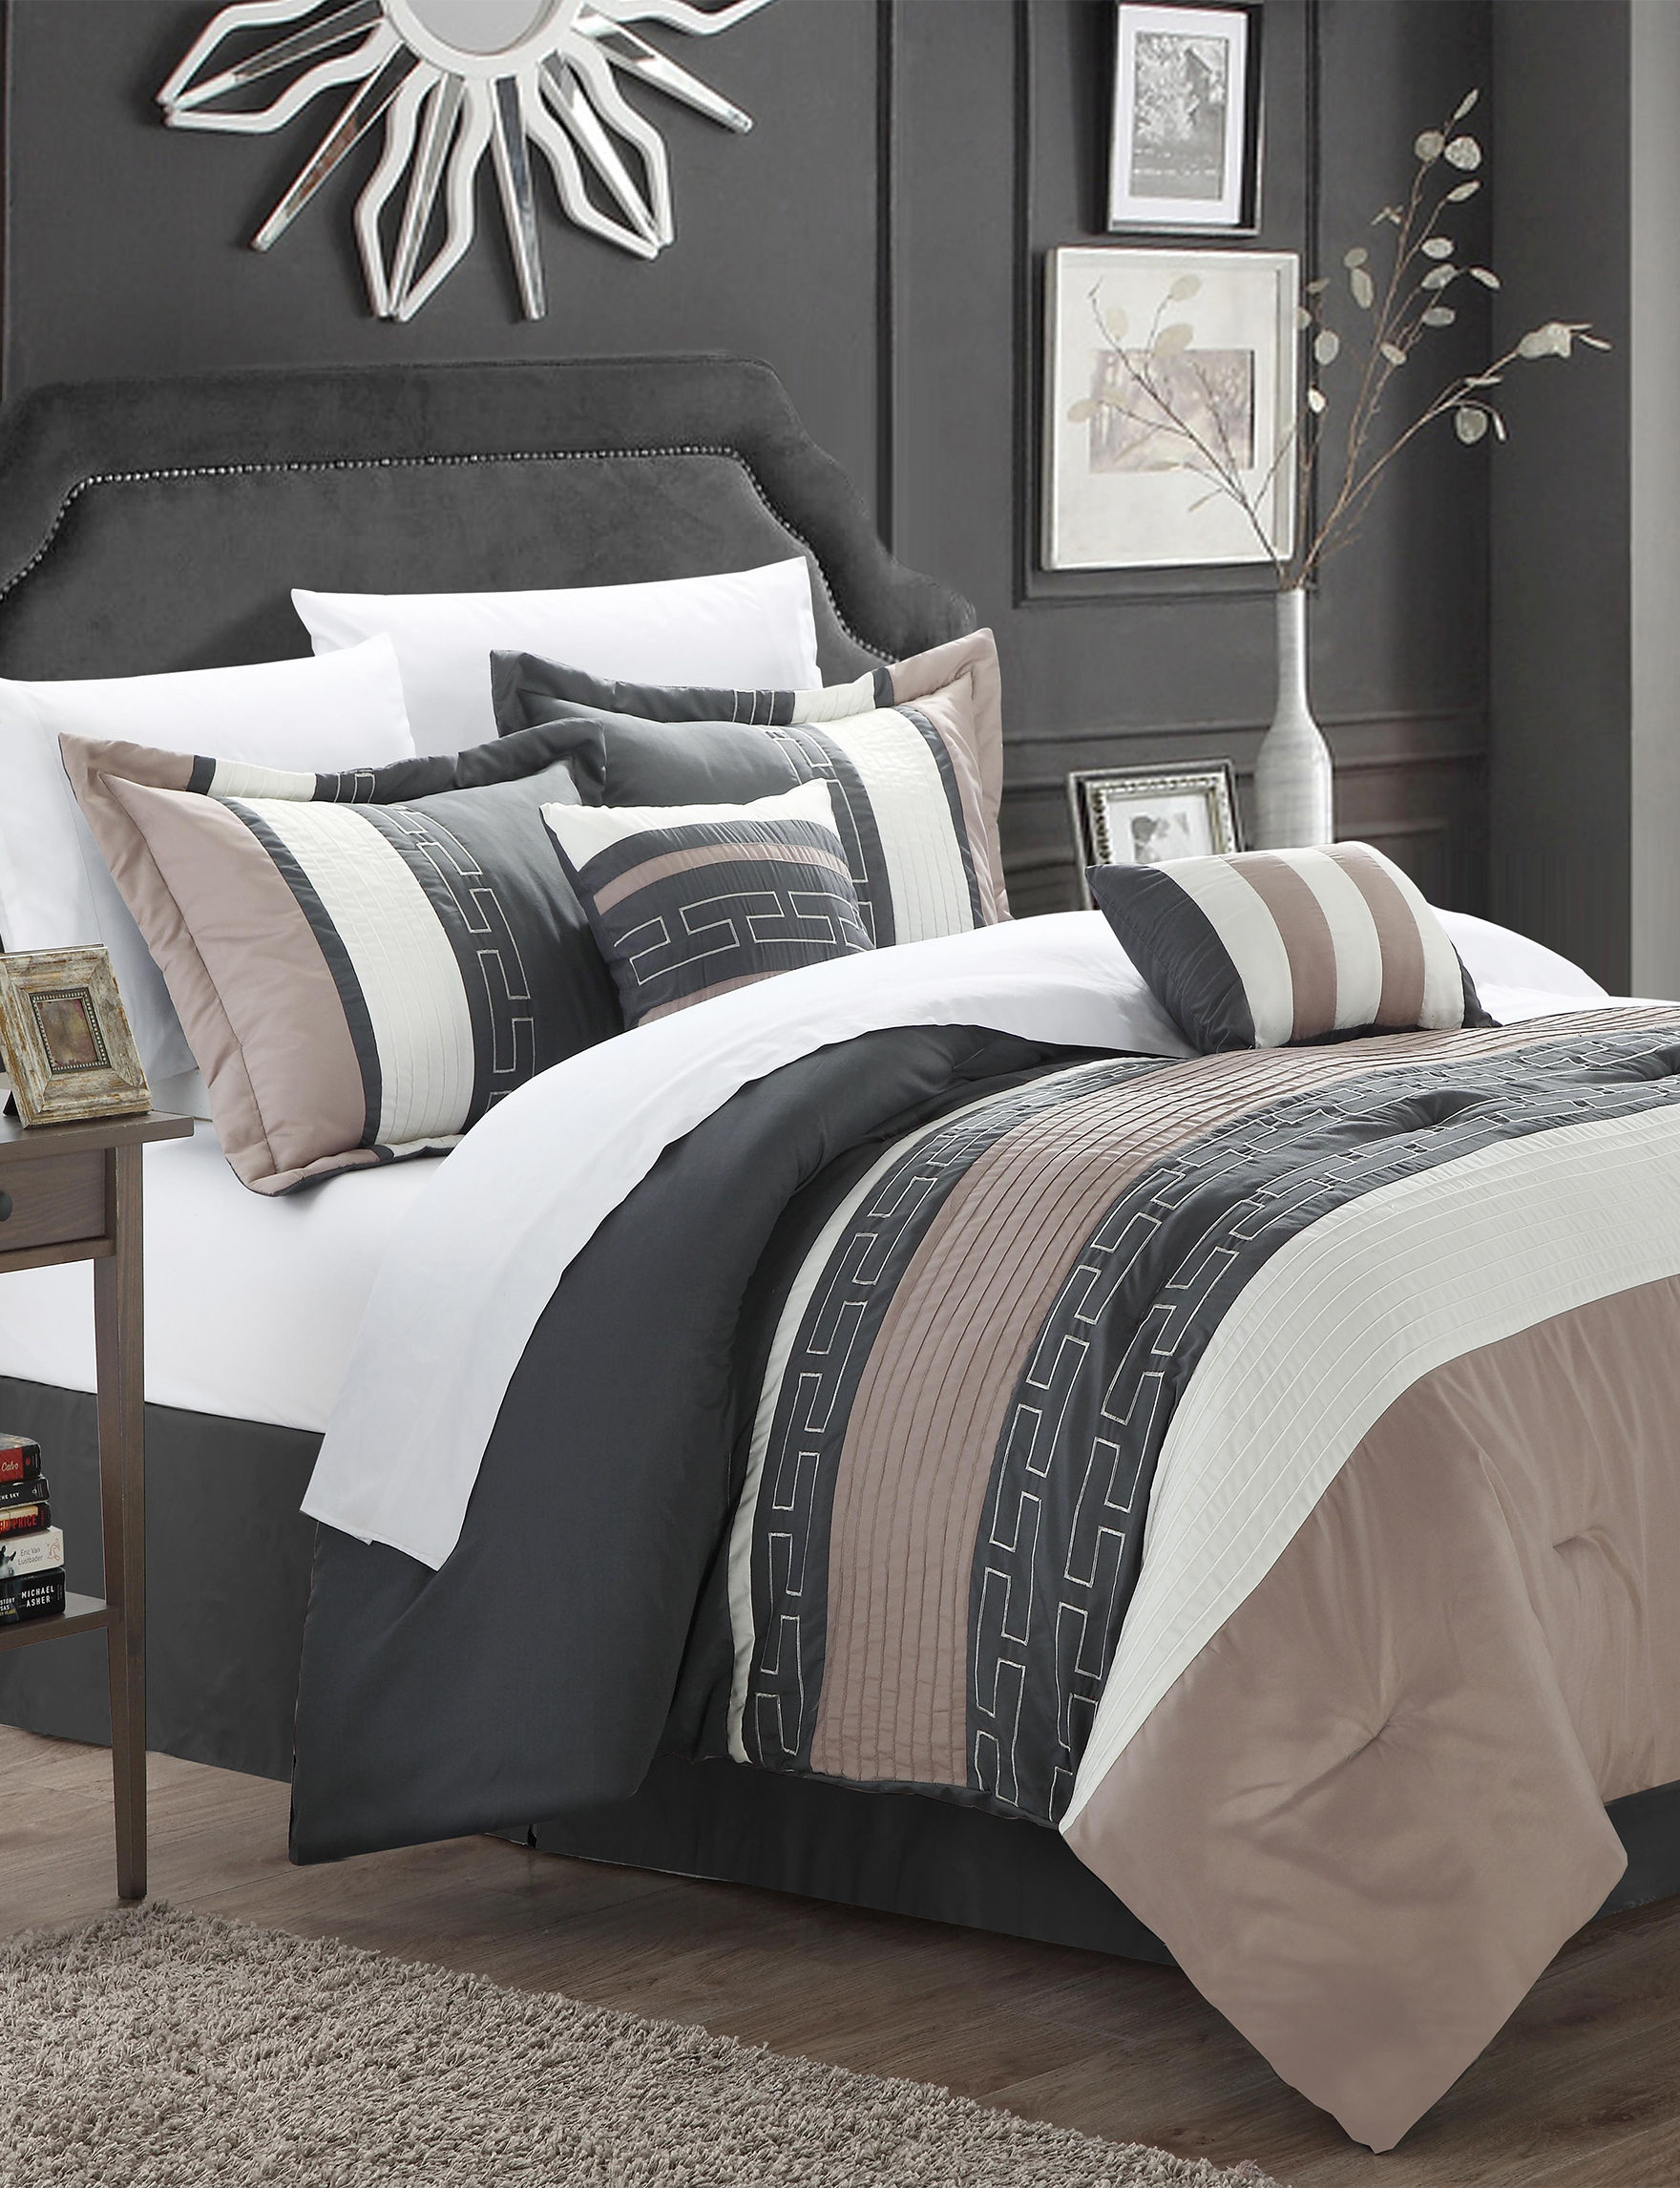 Chic Home Design Tan Multi Comforters & Comforter Sets